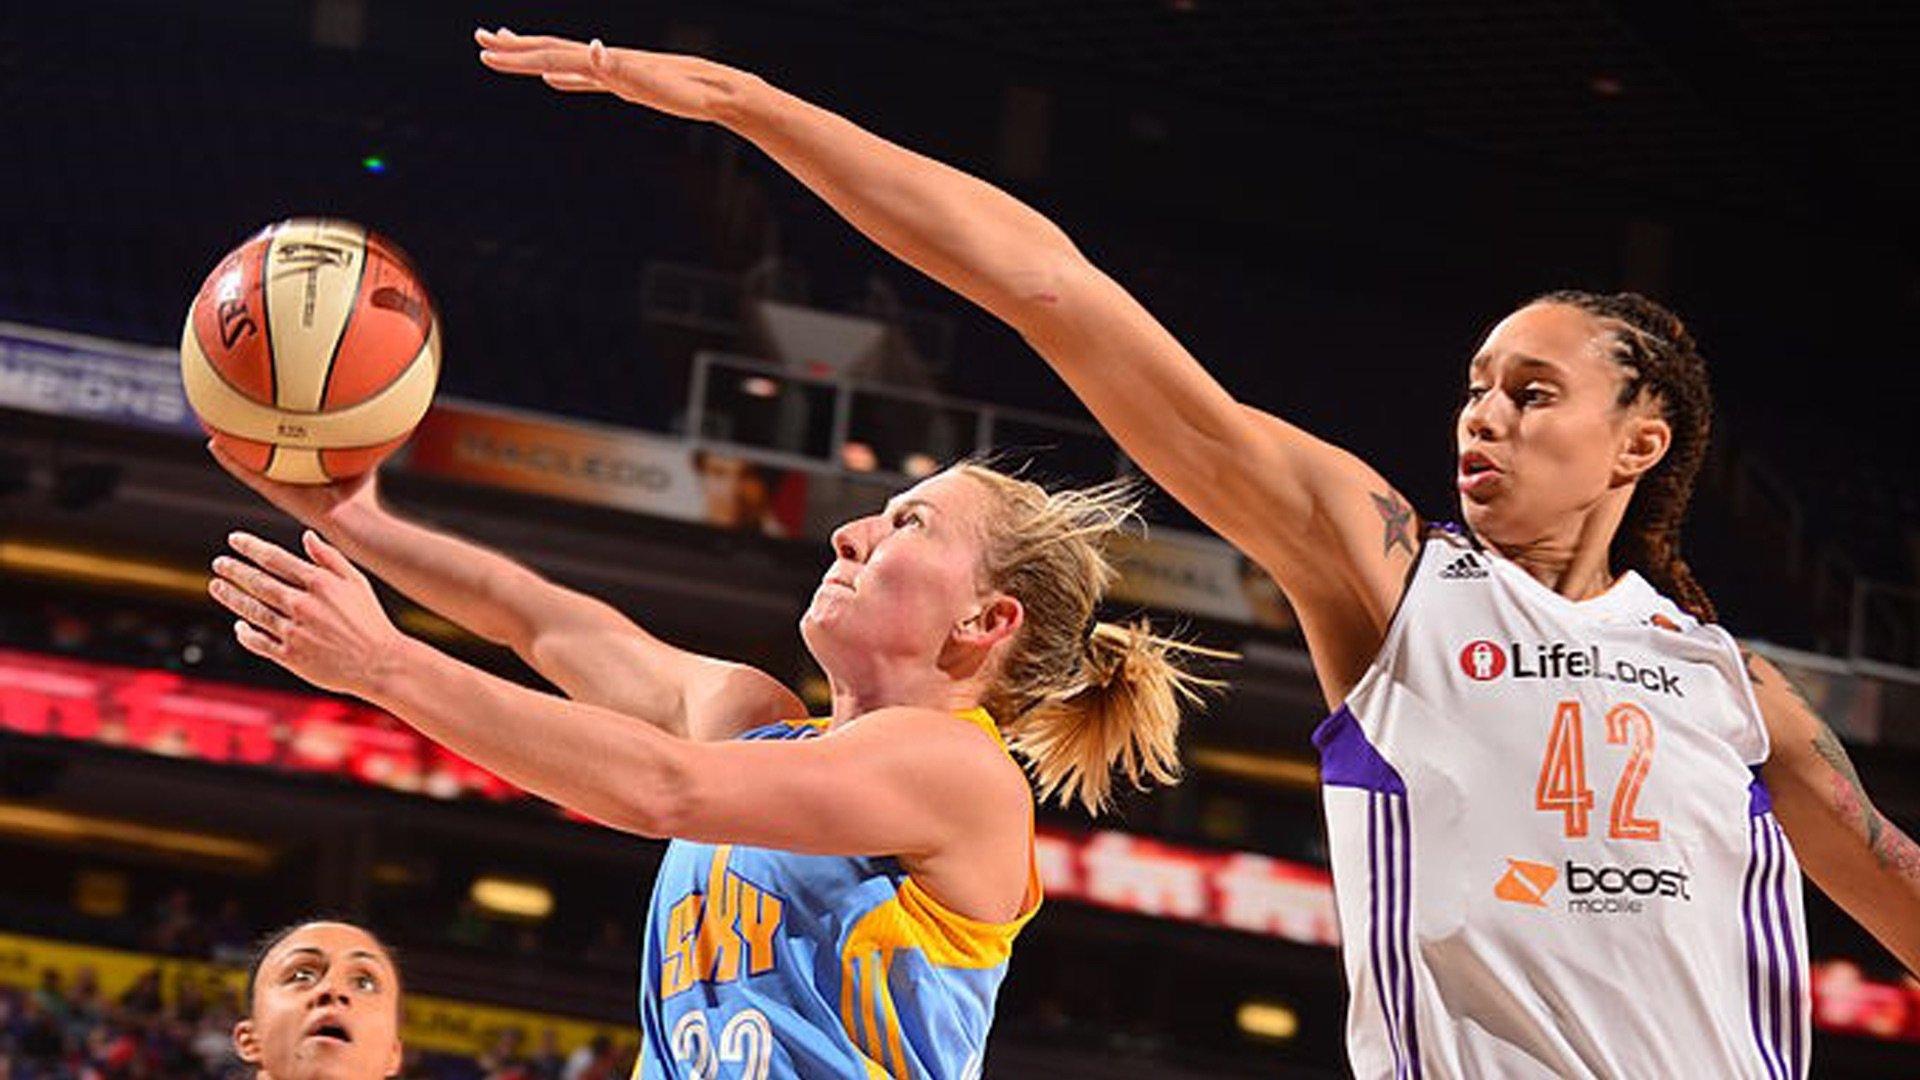 COURTNEY_VANDERSLOOT